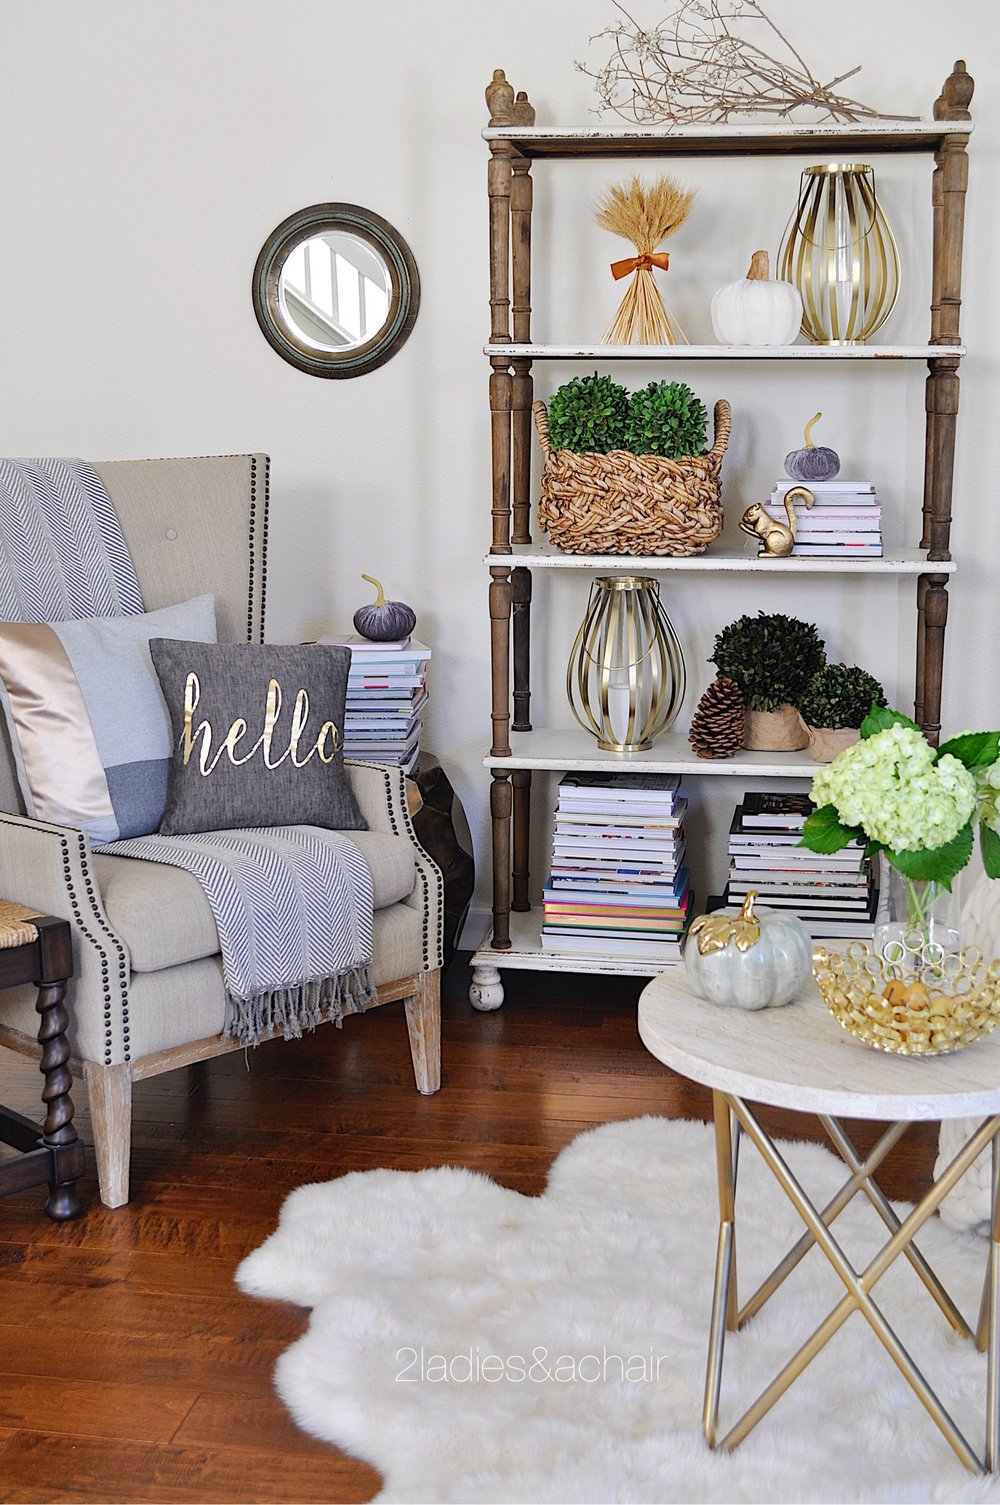 neutral living room decor ideas for fall IMG_8068.JPG